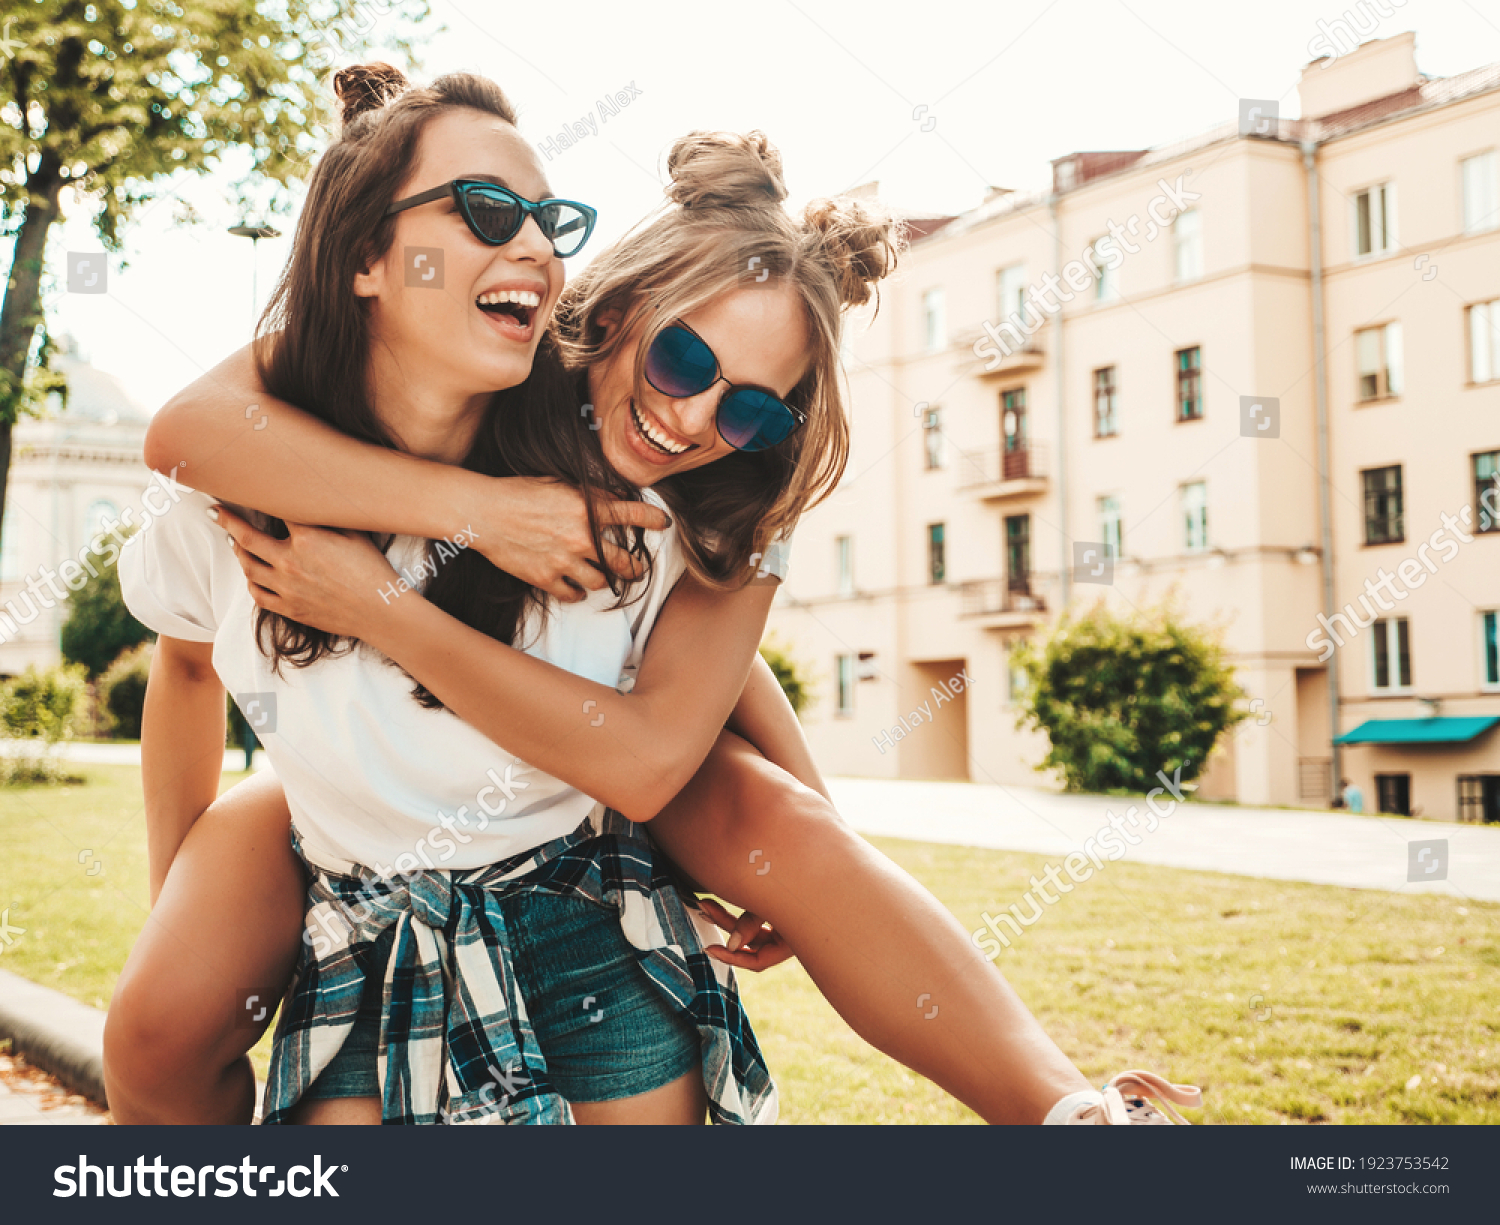 Two young beautiful smiling hipster female in trendy summer white t-shirt clothes.Sexy carefree women posing on street background. Model jumping on her friend back, gives piggyback riding outdoors #1923753542